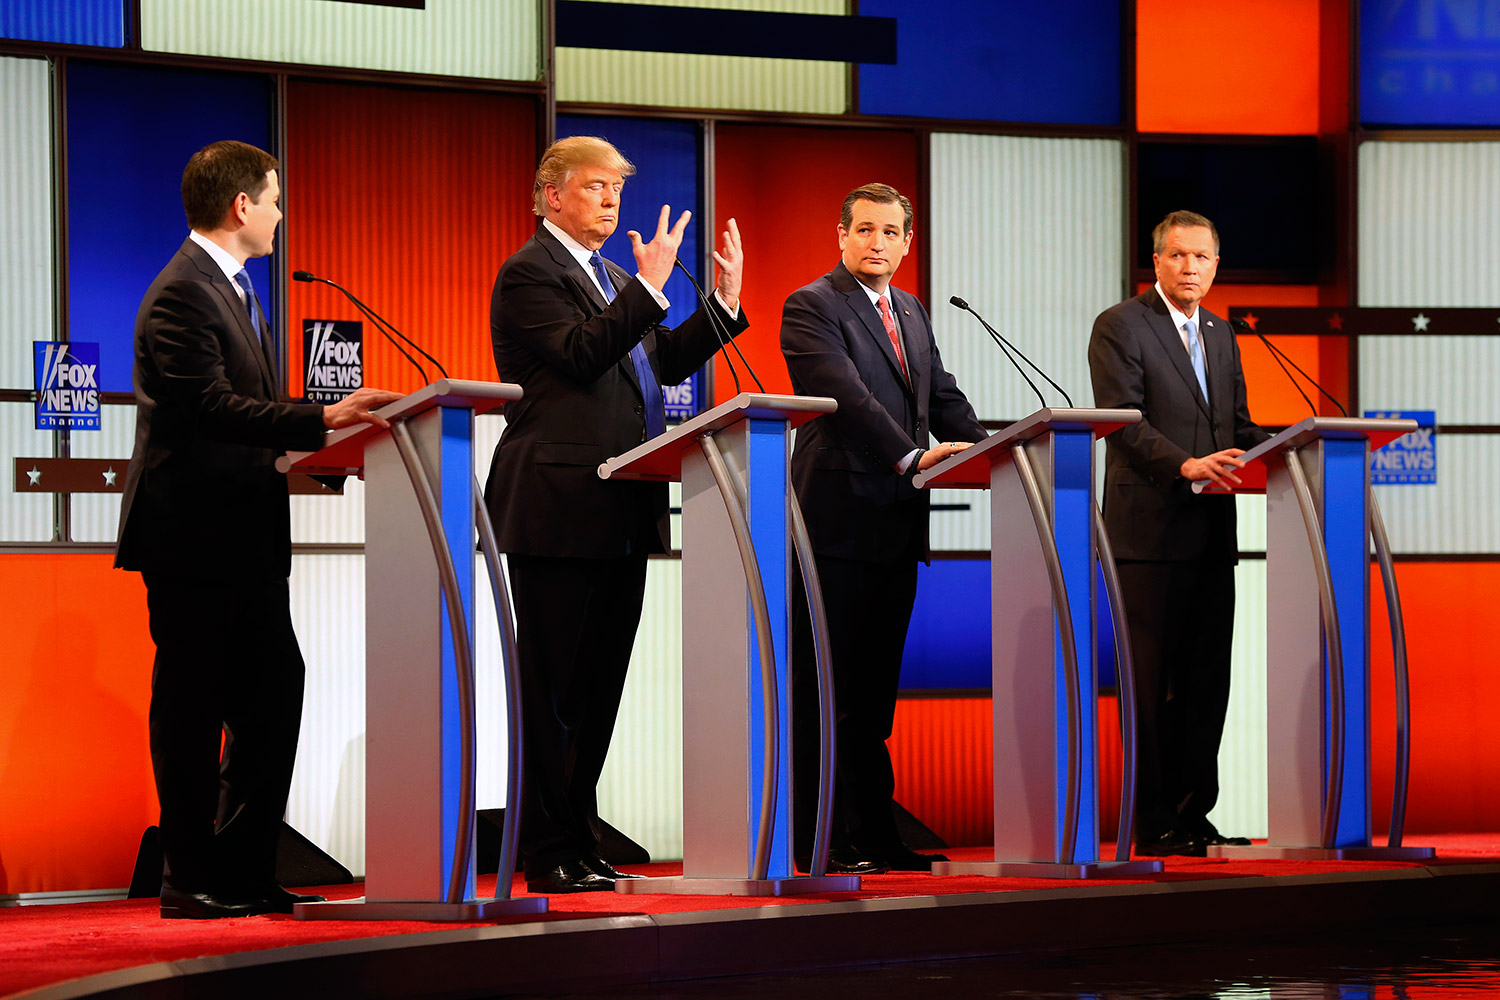 """Donald Trump shows his hands as Marco Rubio, Ted Cruz and John Kasich watch. Trump noted that Rubio had mocked his hands as small – widely viewed as an insult about Trump's sexual prowess – and said, """"I guarantee you, there's no problem"""" in that area. The Associated Press"""